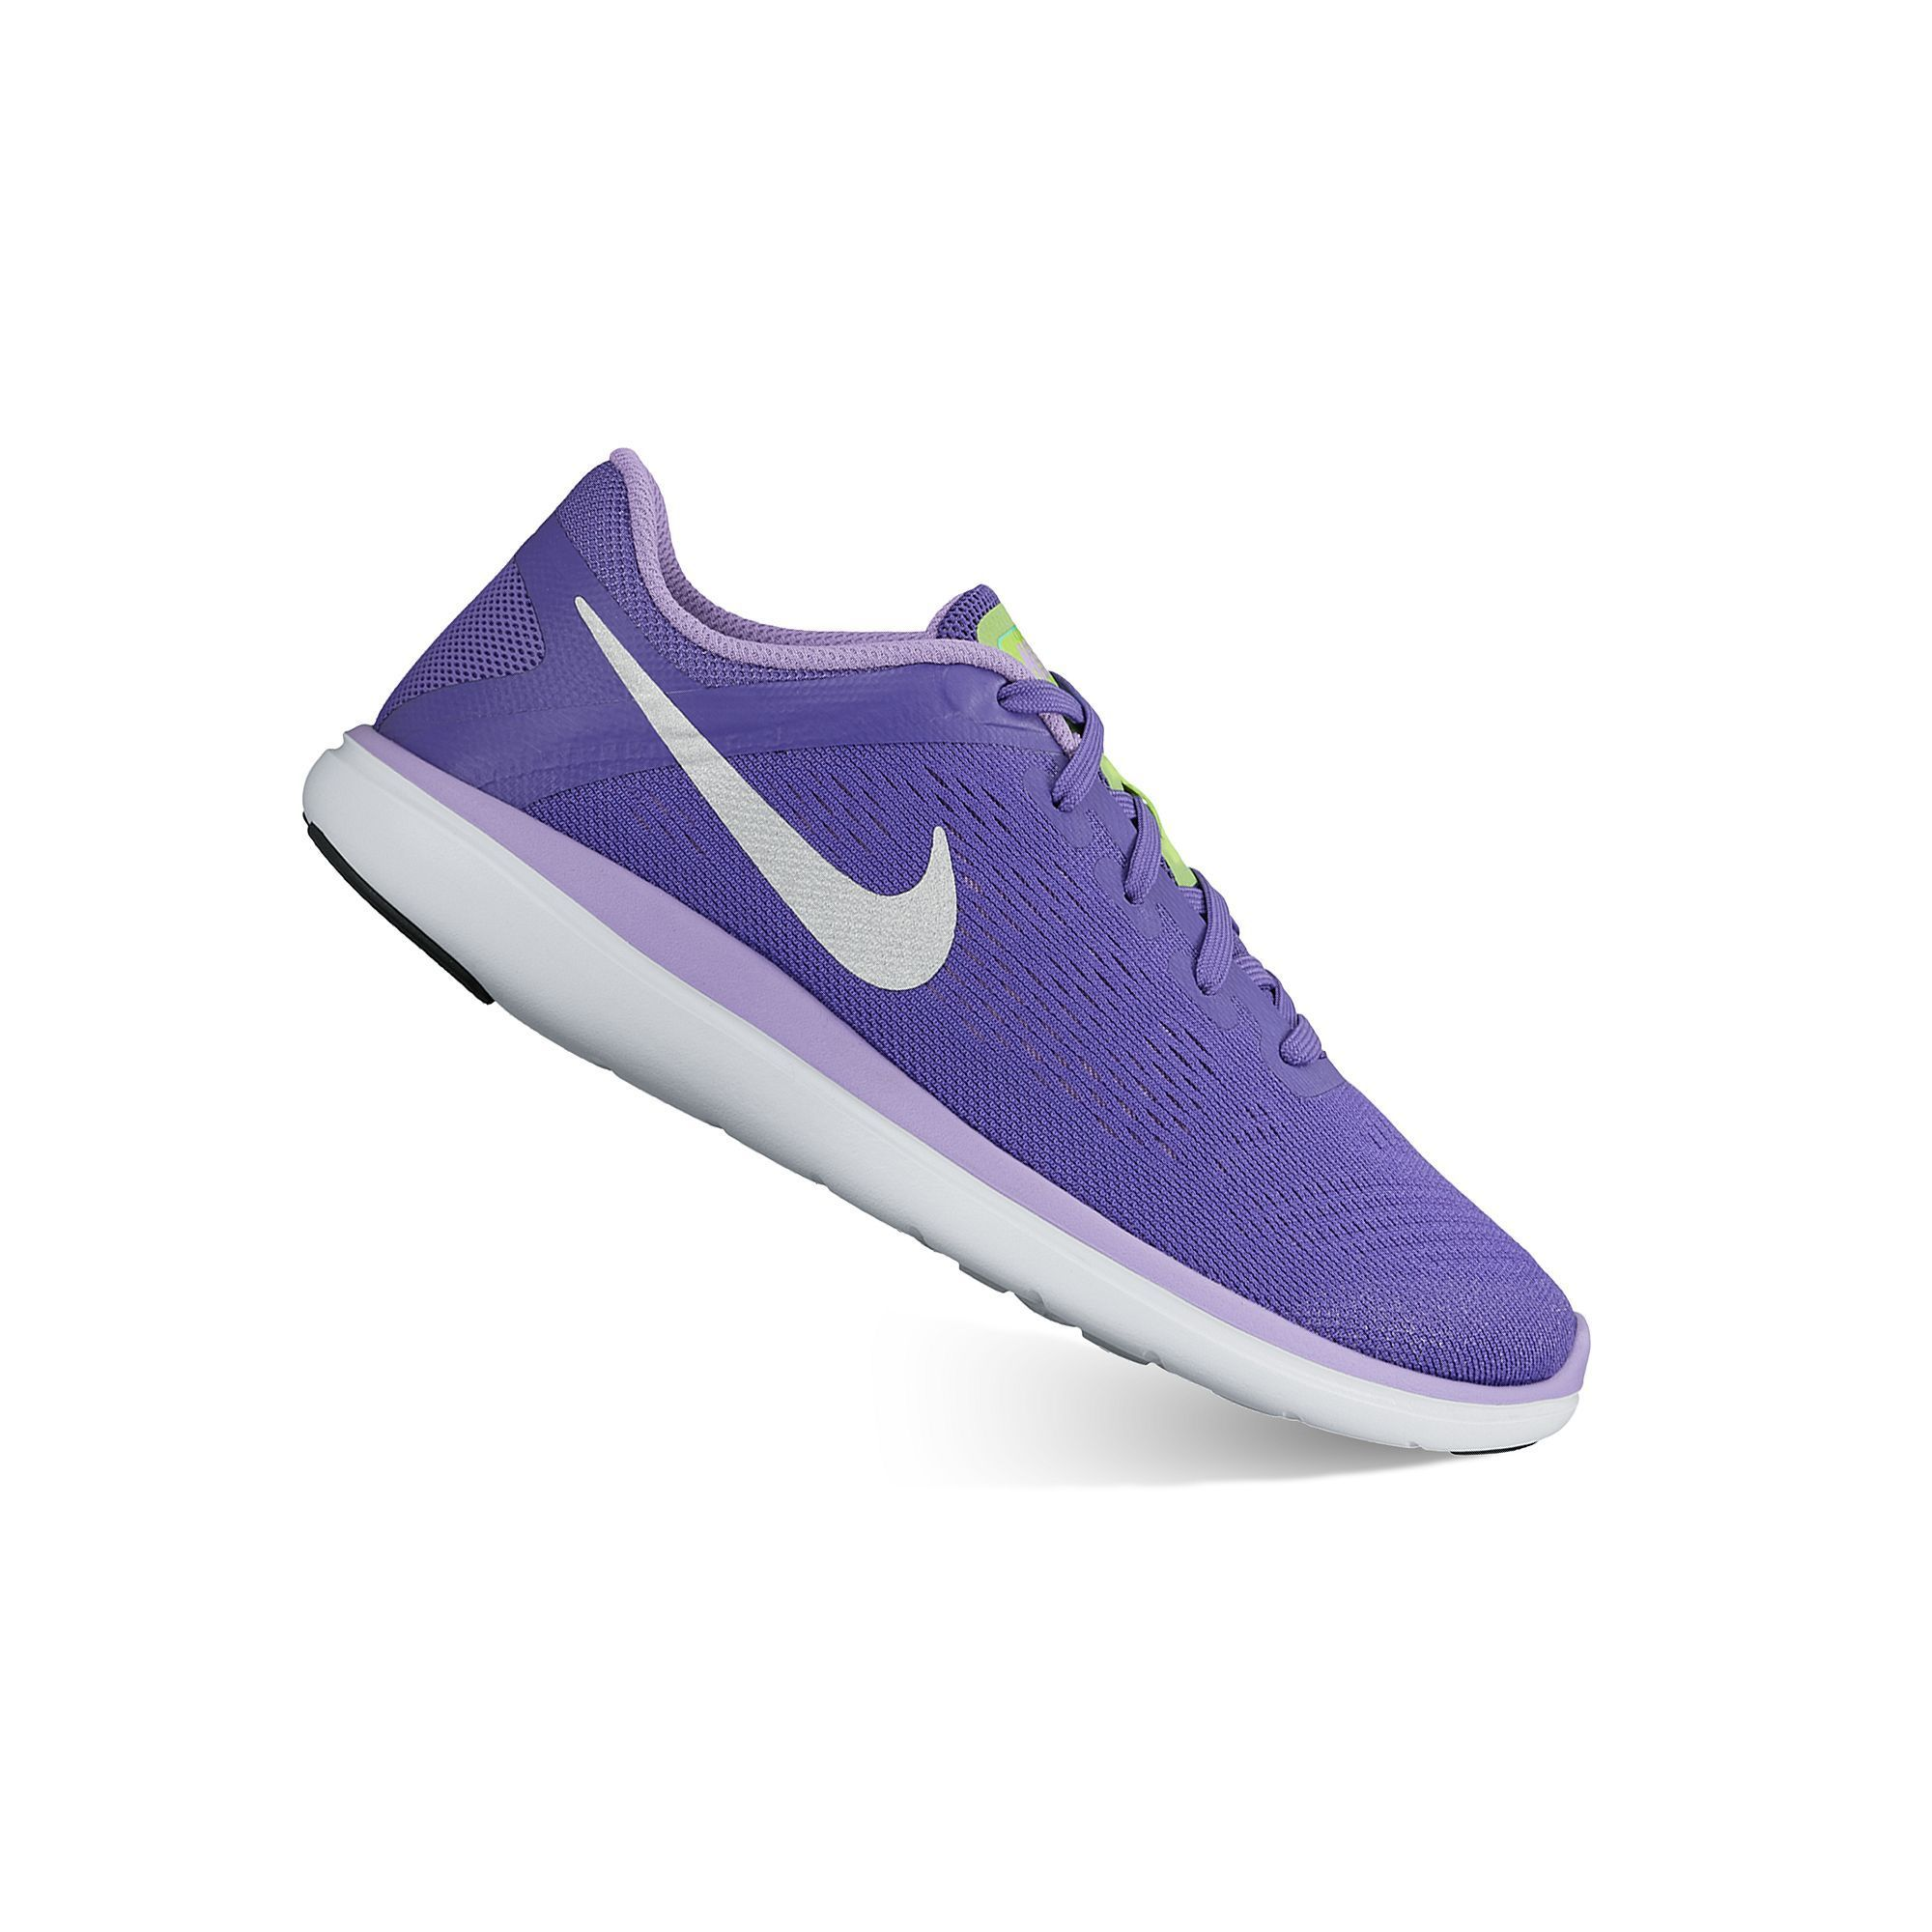 Purple Drk Nike Girls' 2016 Running Flex Size 5 Grade RN Girl's Shoes School P7w1aPx